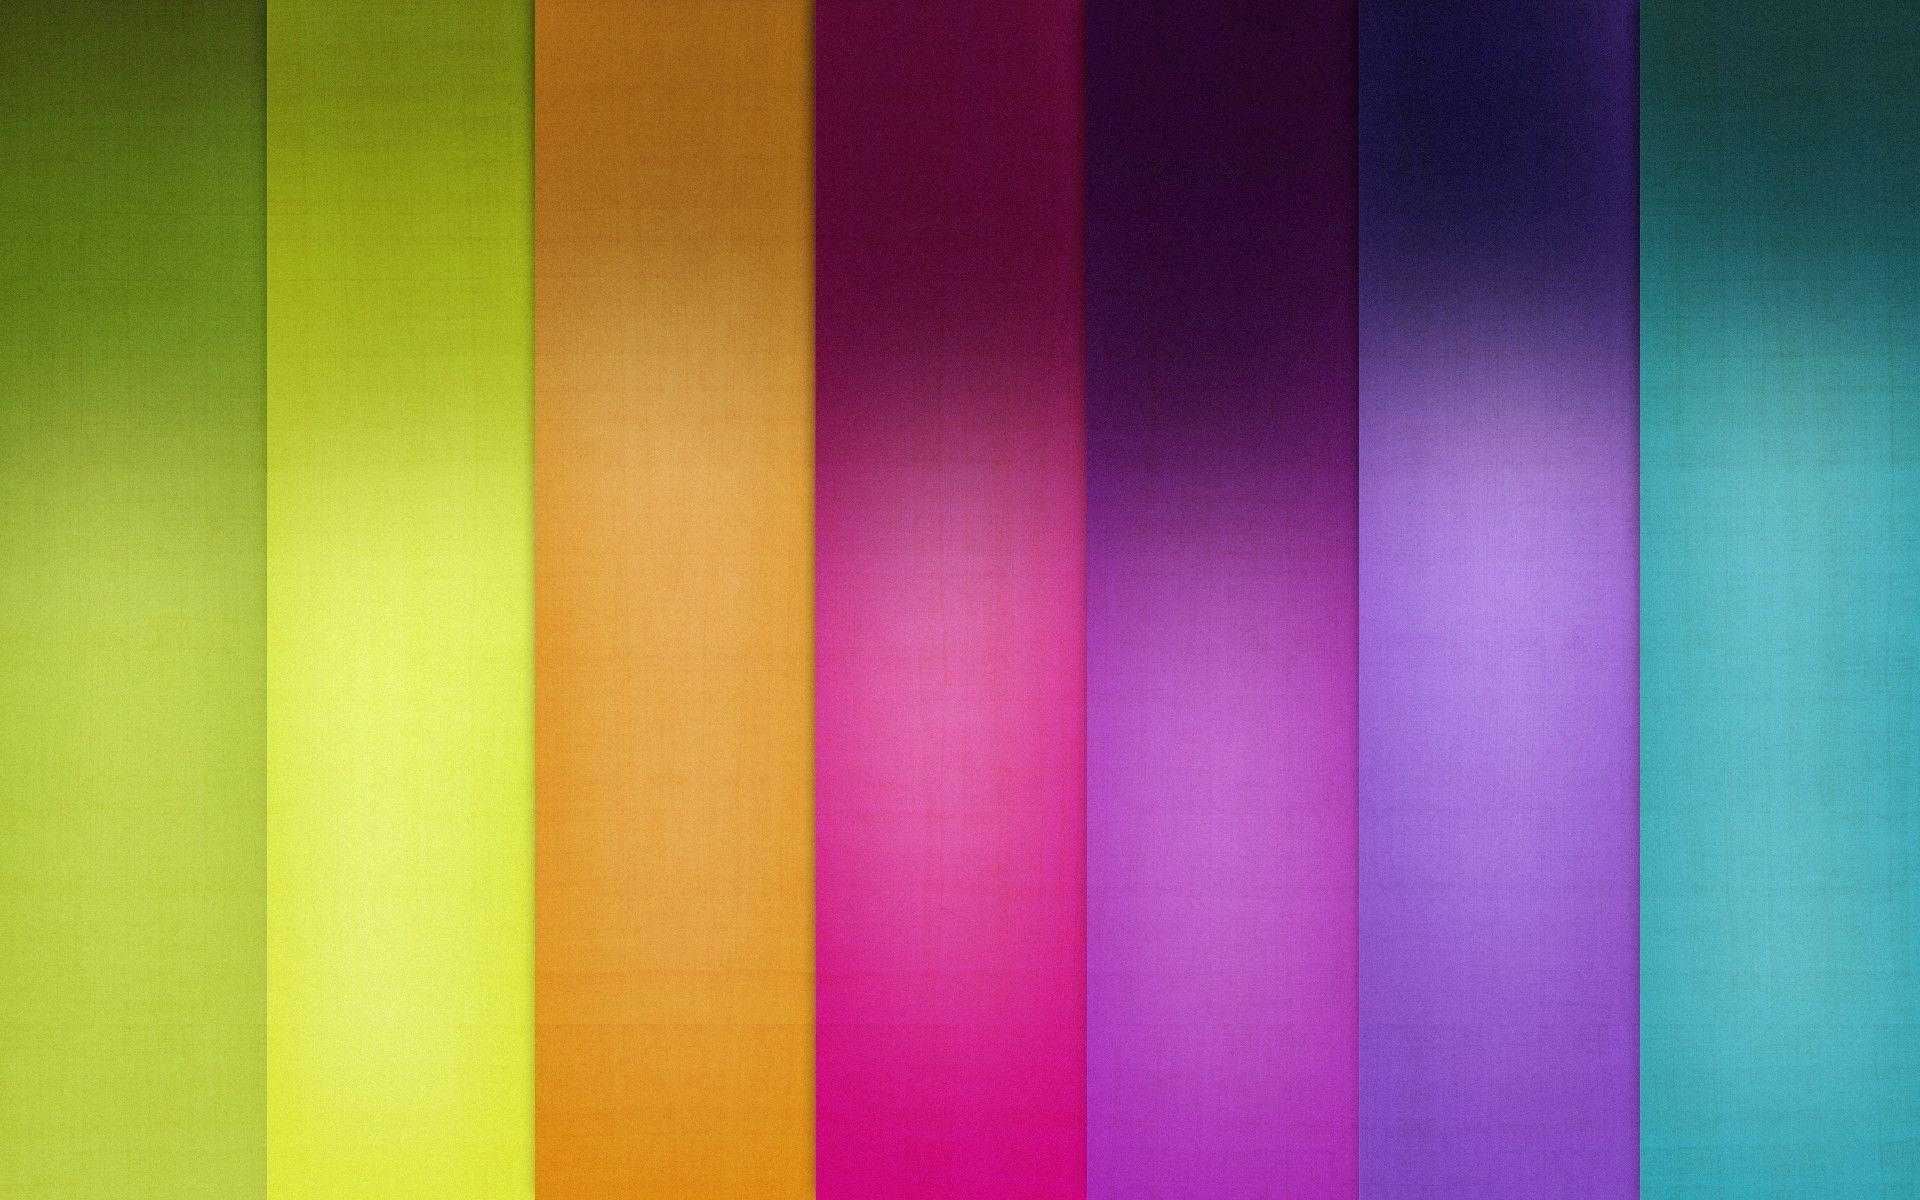 Colorful Striped Wallpapers 1920x1200